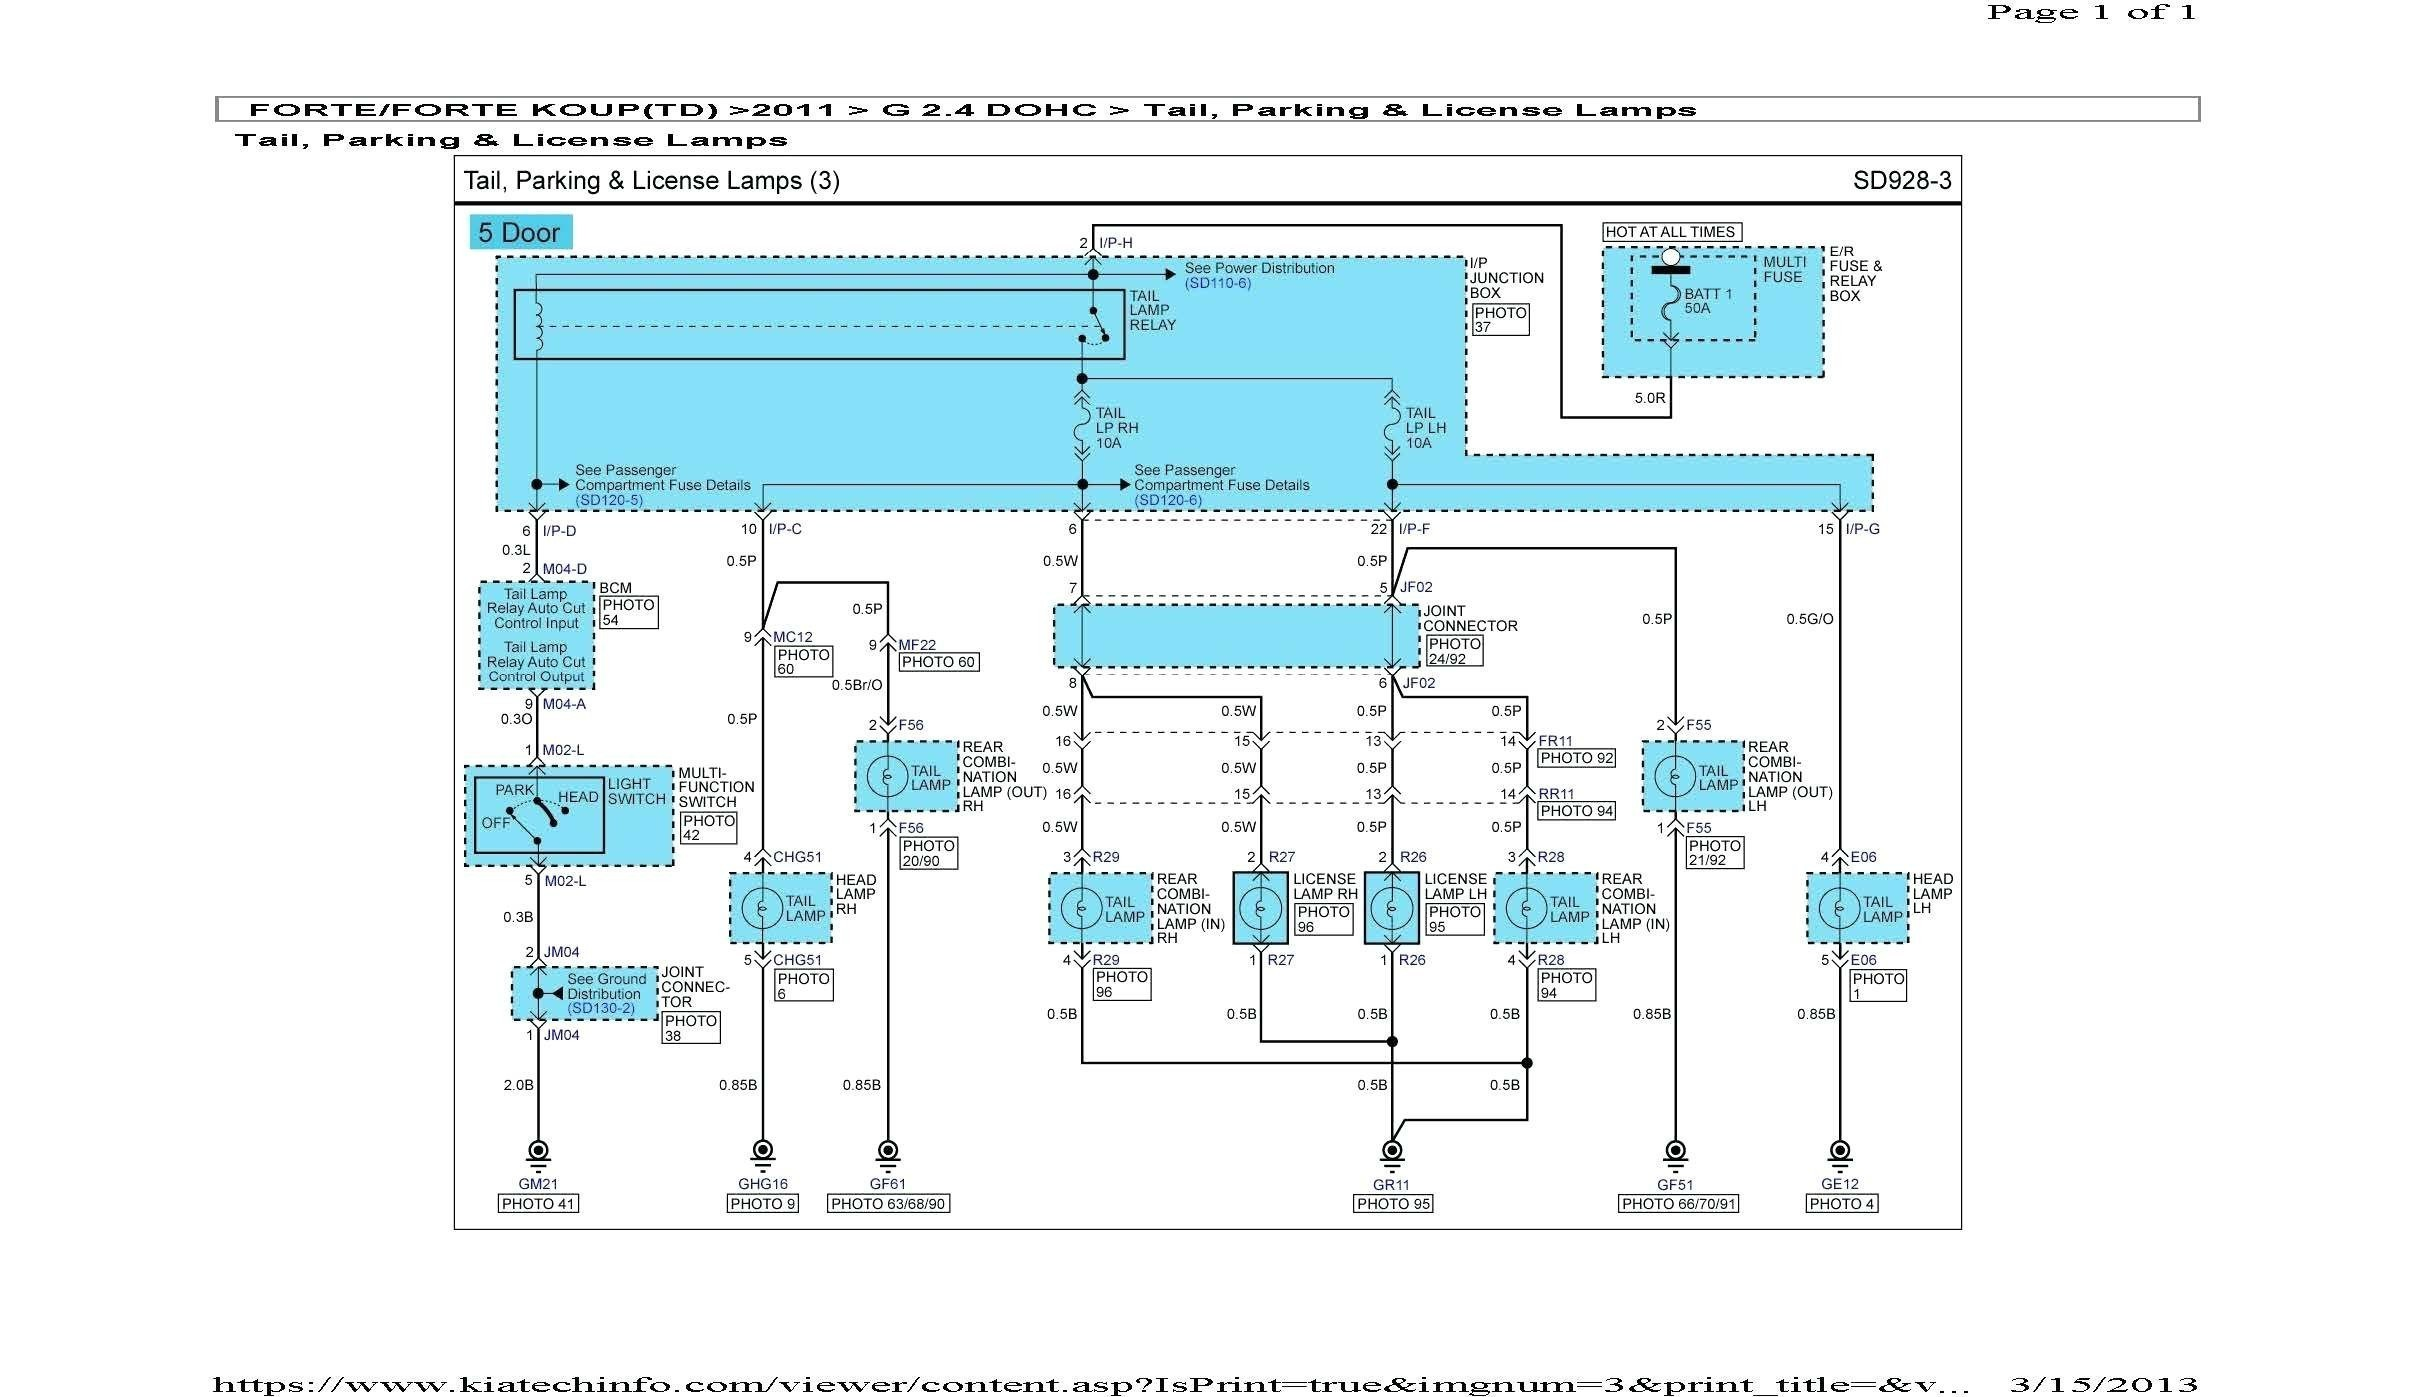 2007 Kia Optima Engine Diagram 2003 Kia Optima Wiring Diagram Another Blog About Wiring Diagram • Of 2007 Kia Optima Engine Diagram Dodge Caravan Tail Light Wiring Diagram Unique 2007 Dodge Ram 1500